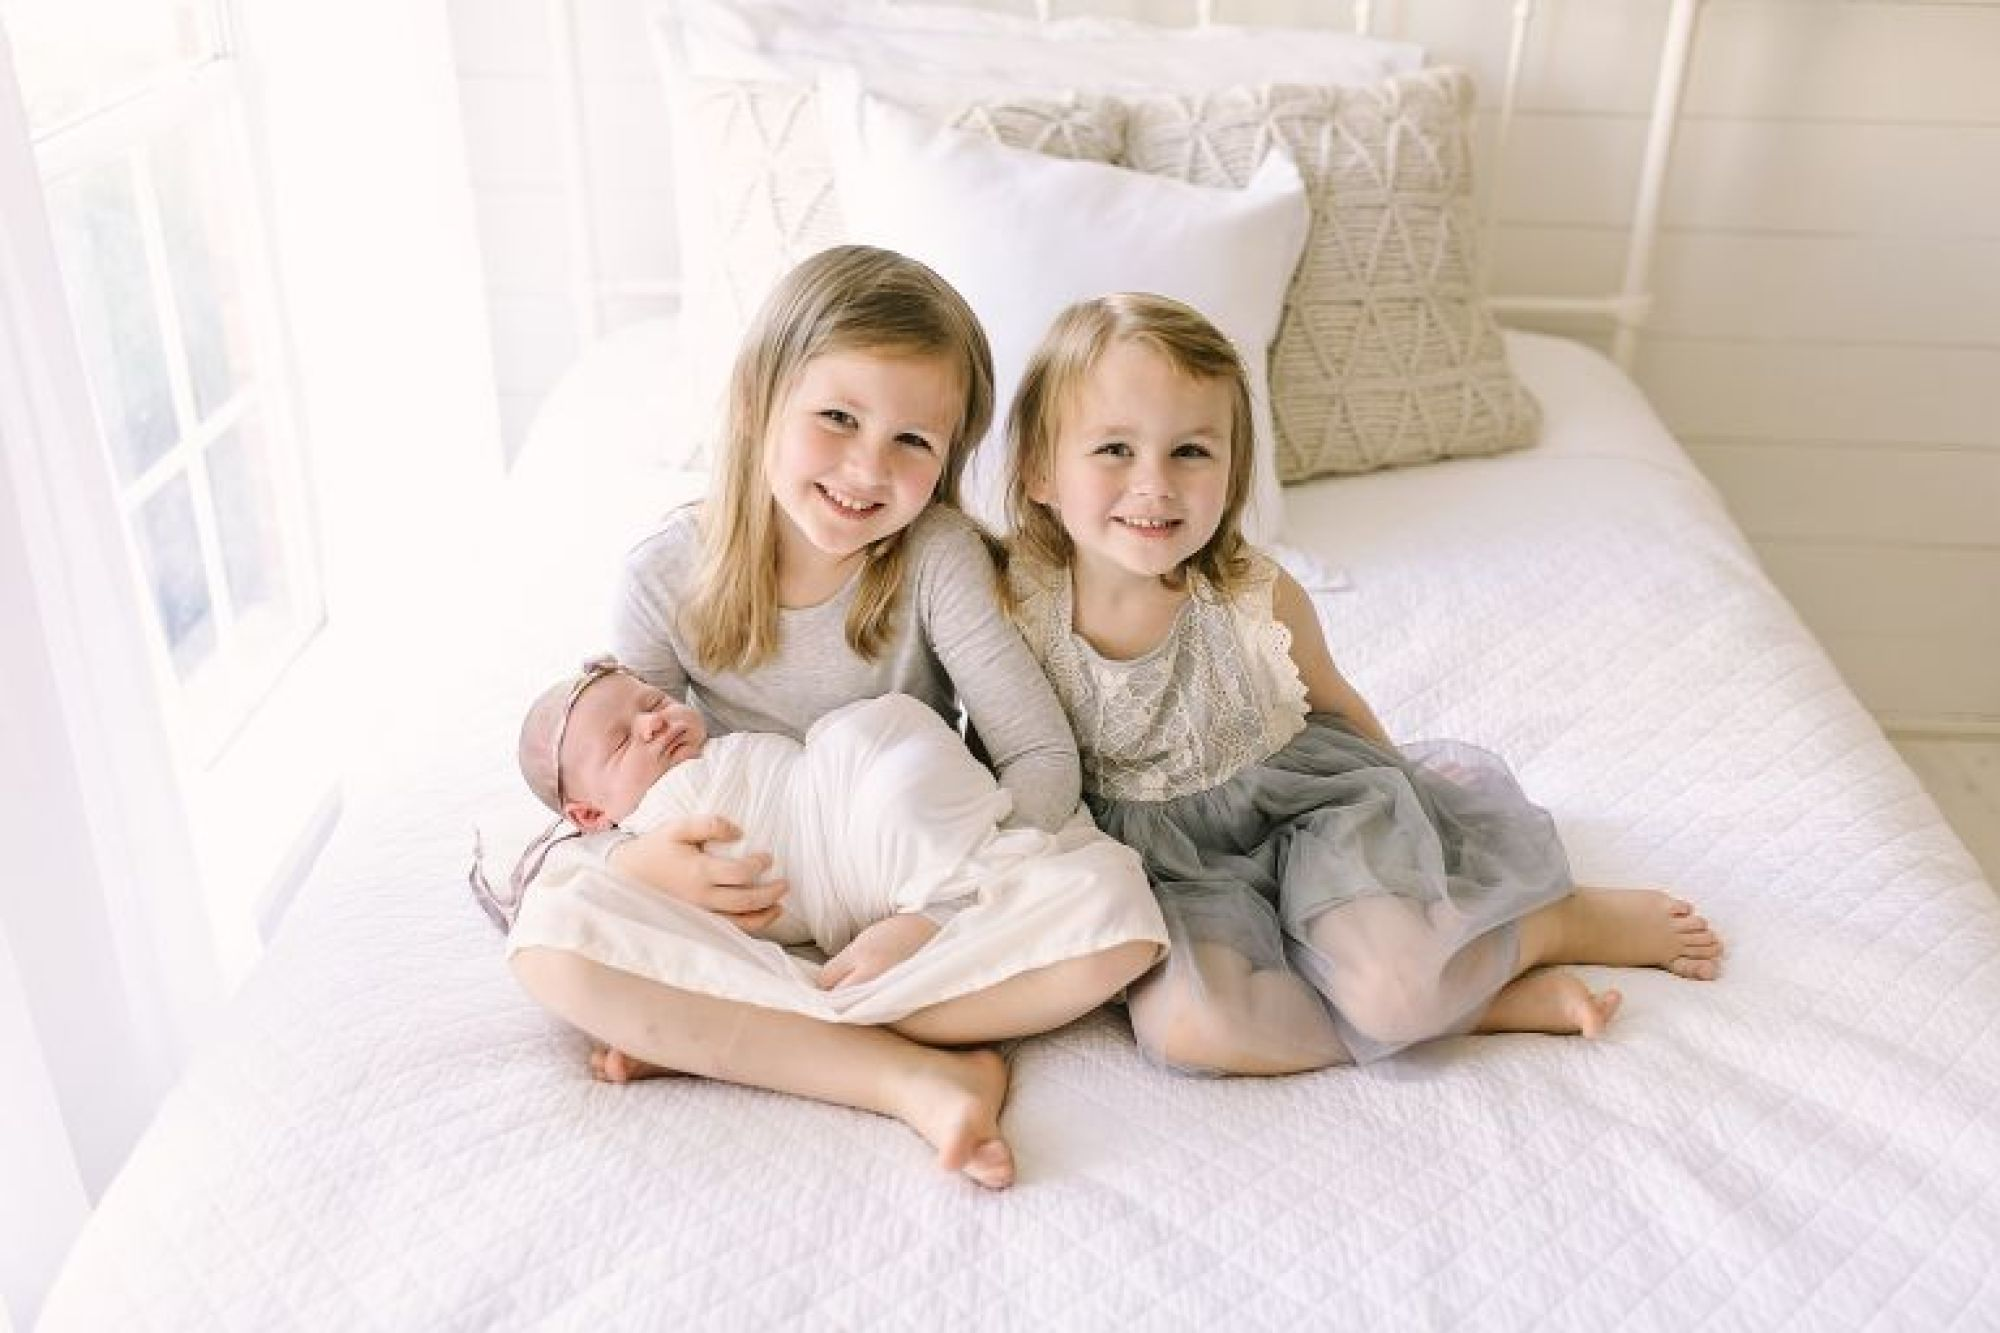 Two big sisters with newborn baby girl sitting on a bed in Courtney Griffin Photography's studio.